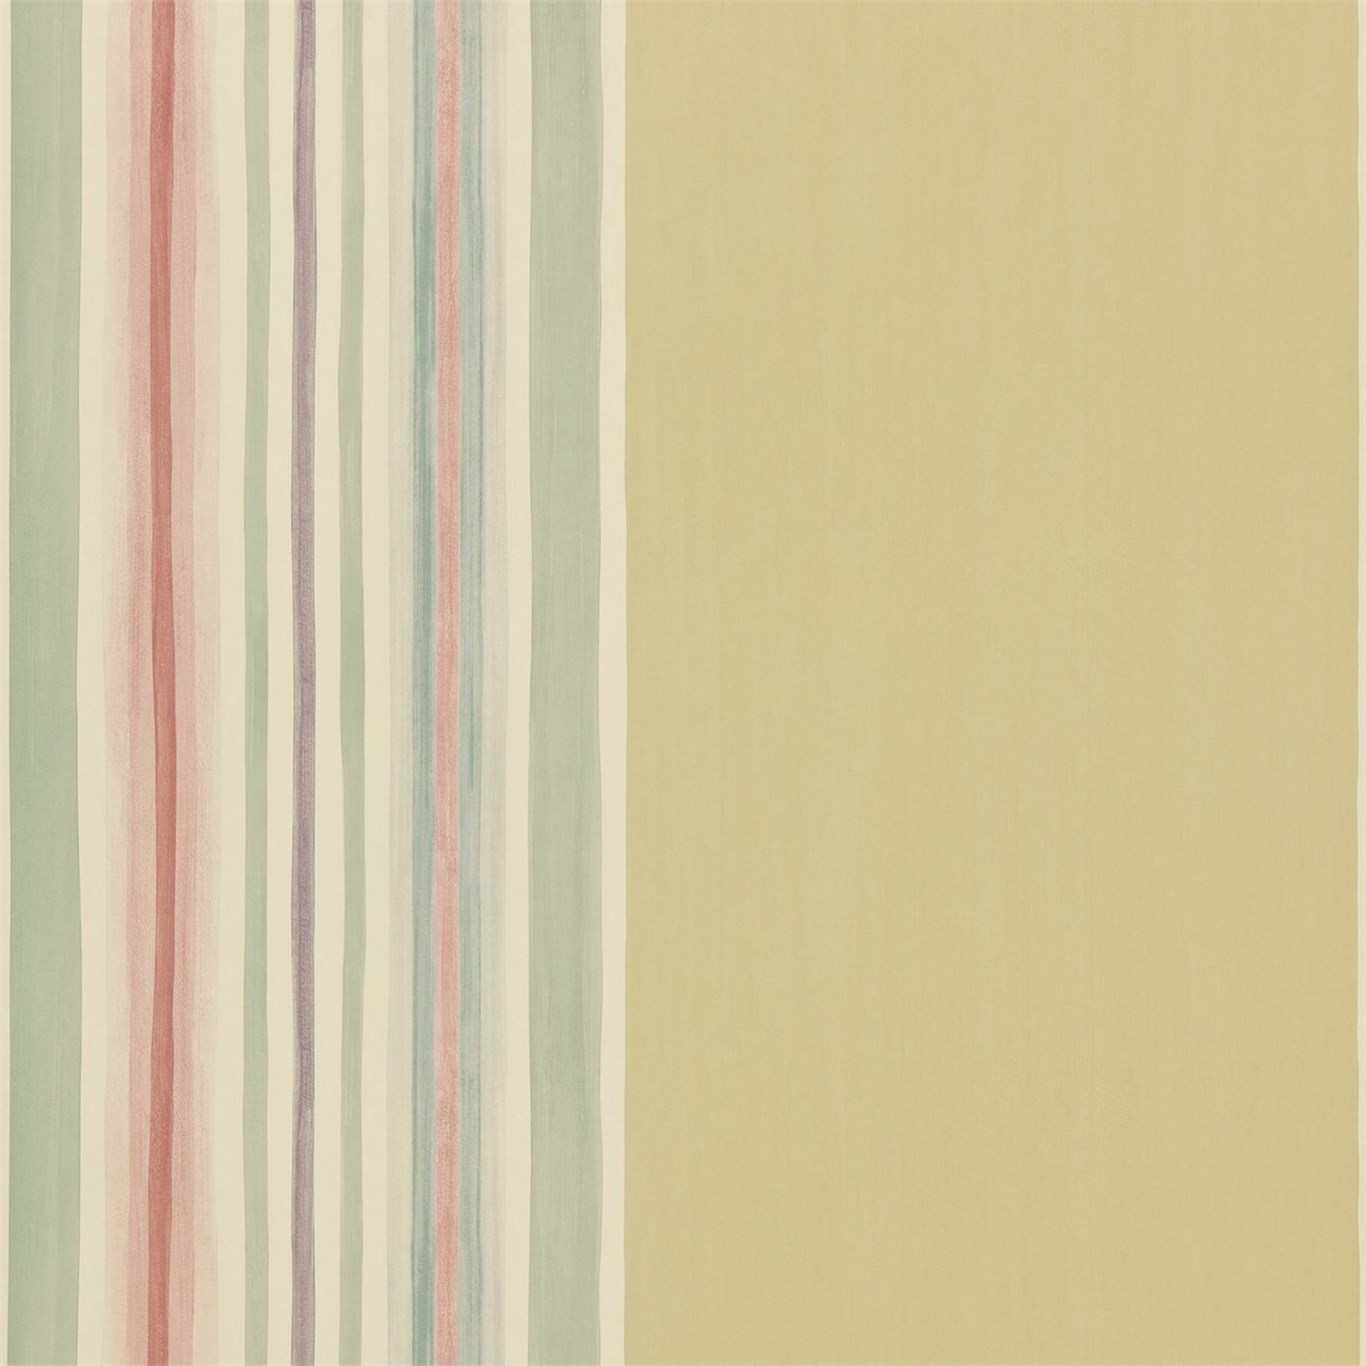 Merchant House Stripe 310463